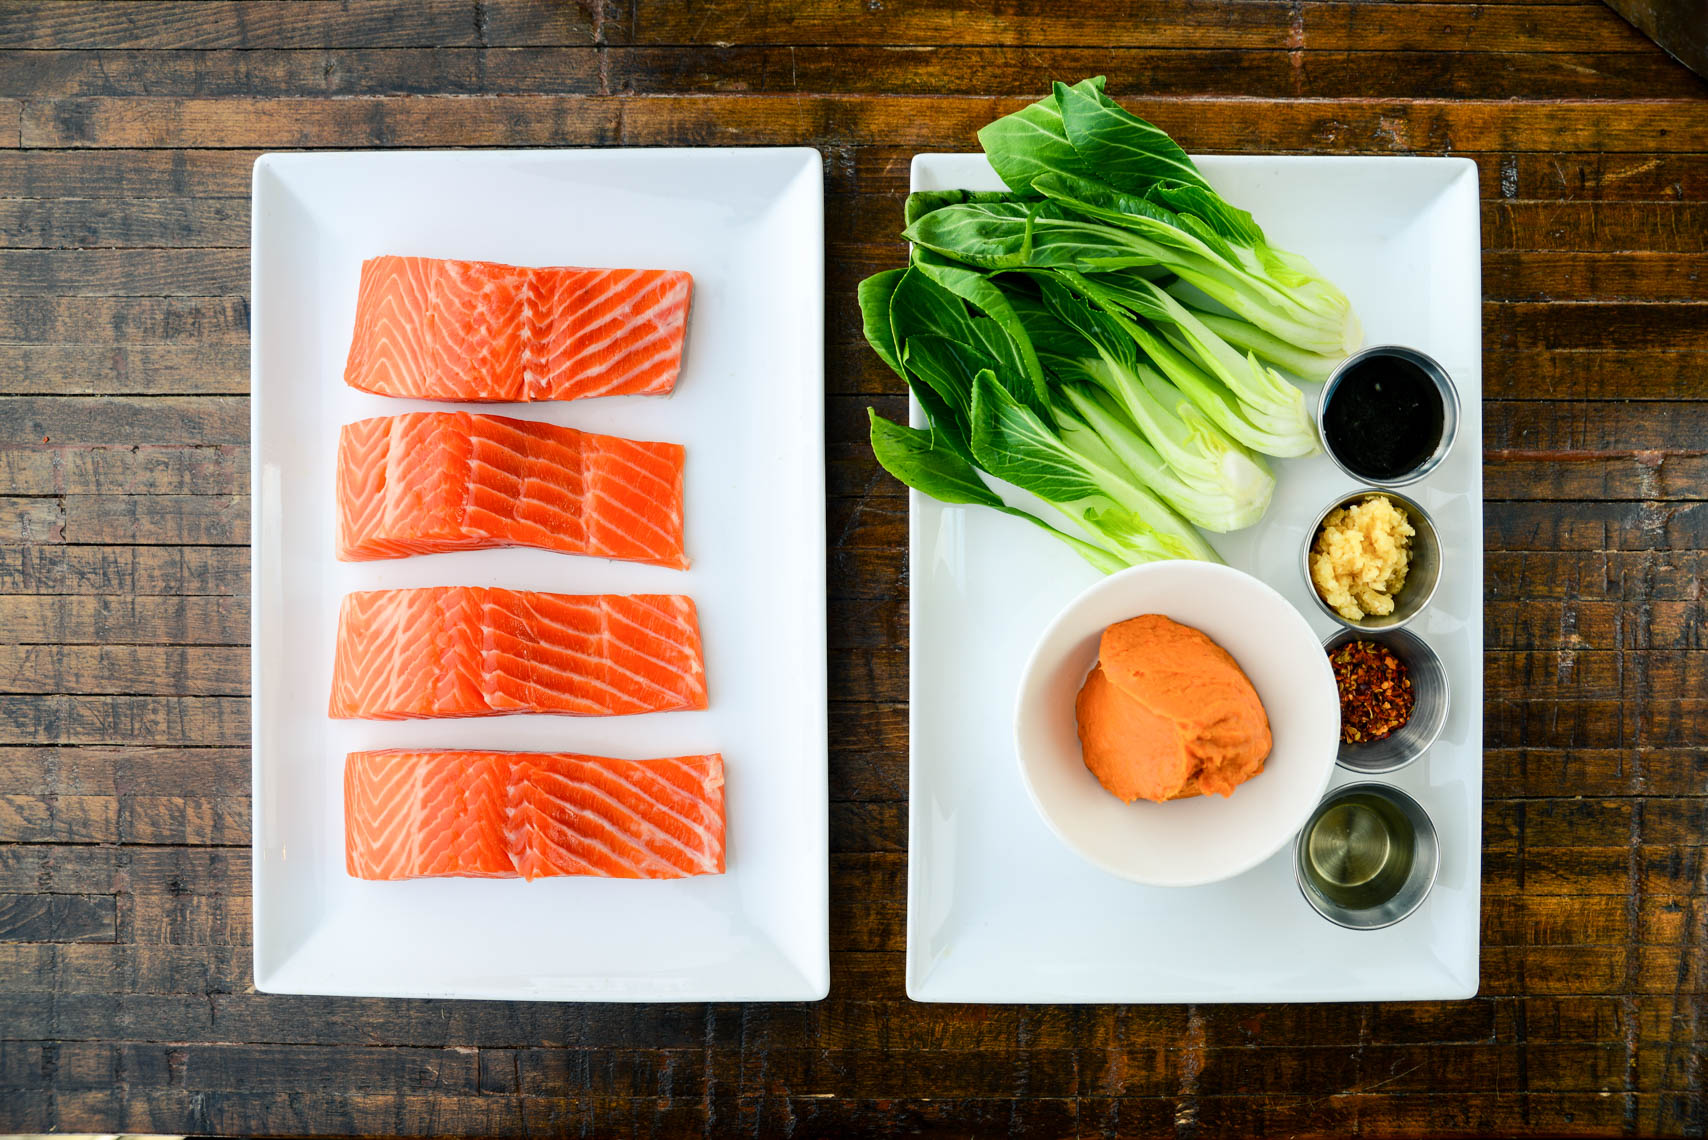 Prep Ingredients Mise en Place Salmon Portions and Bok Choy with Miso